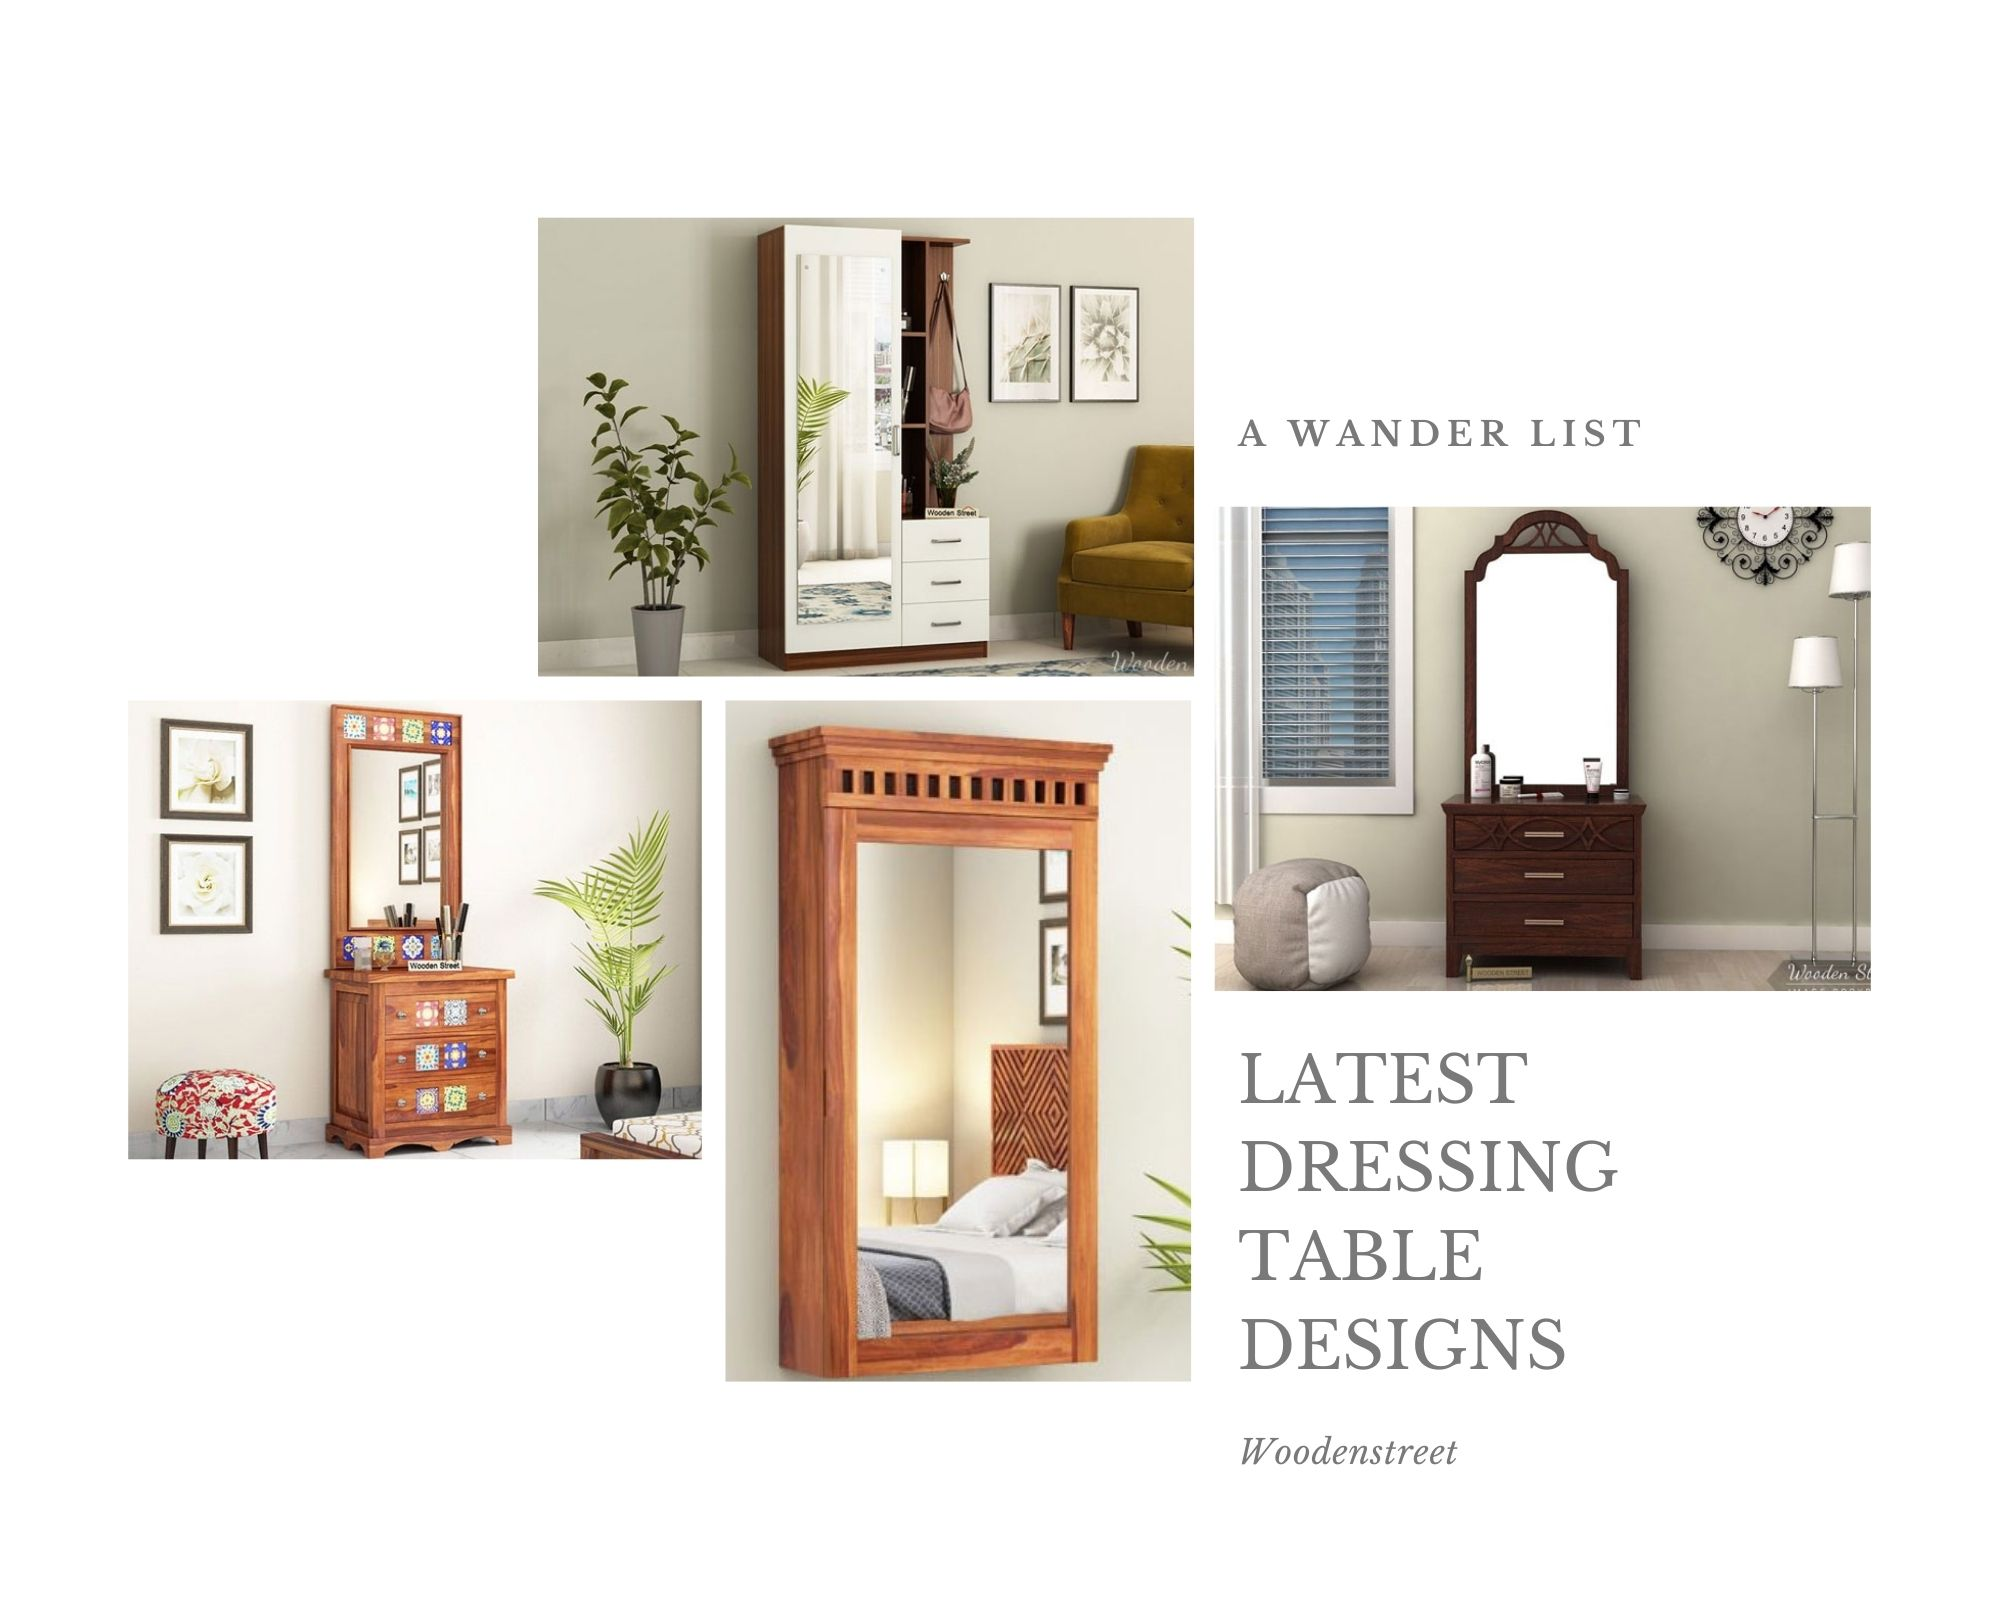 latest Dressing Table Designs